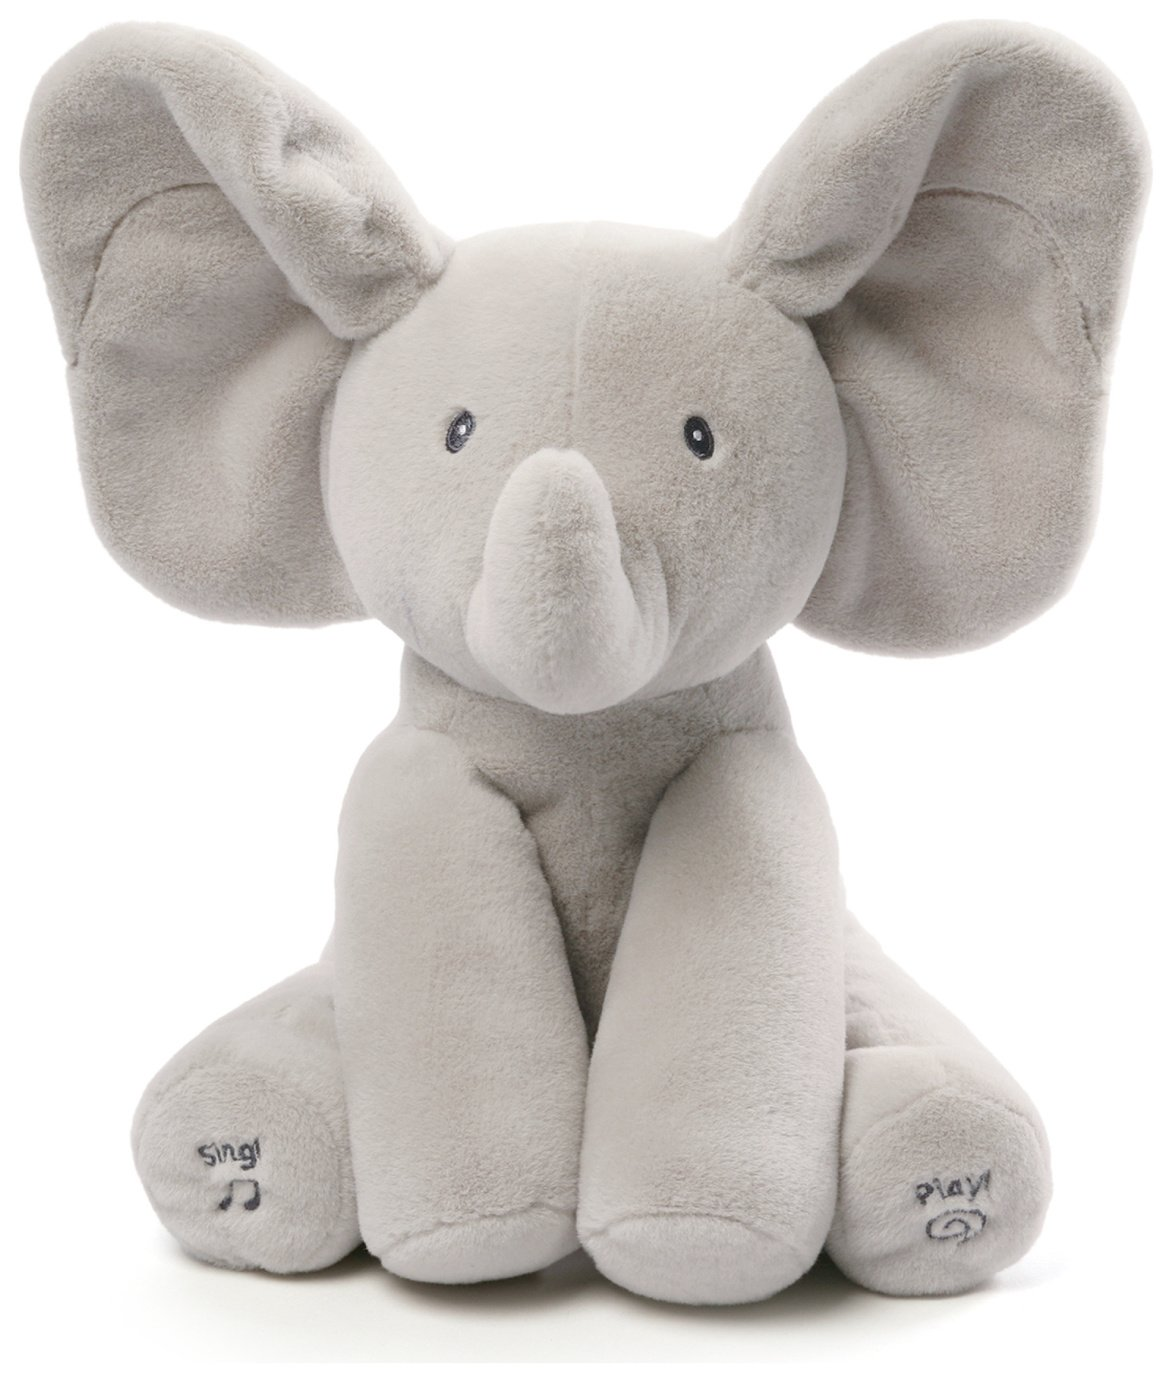 Flappy the Elephant Soft Toy